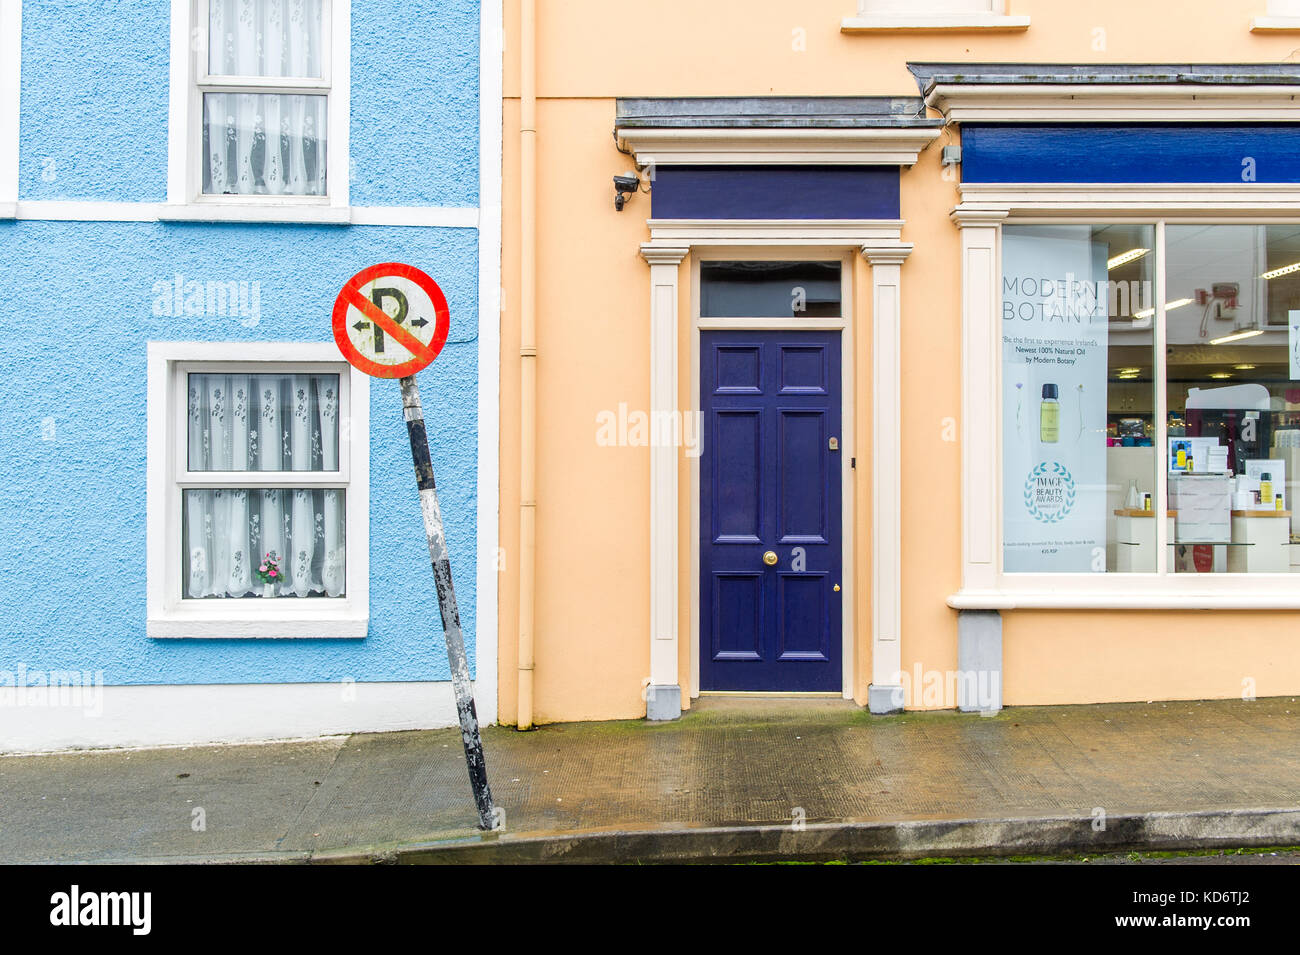 No parking sign in Schull Main Street, Schull, Ireland. - Stock Image